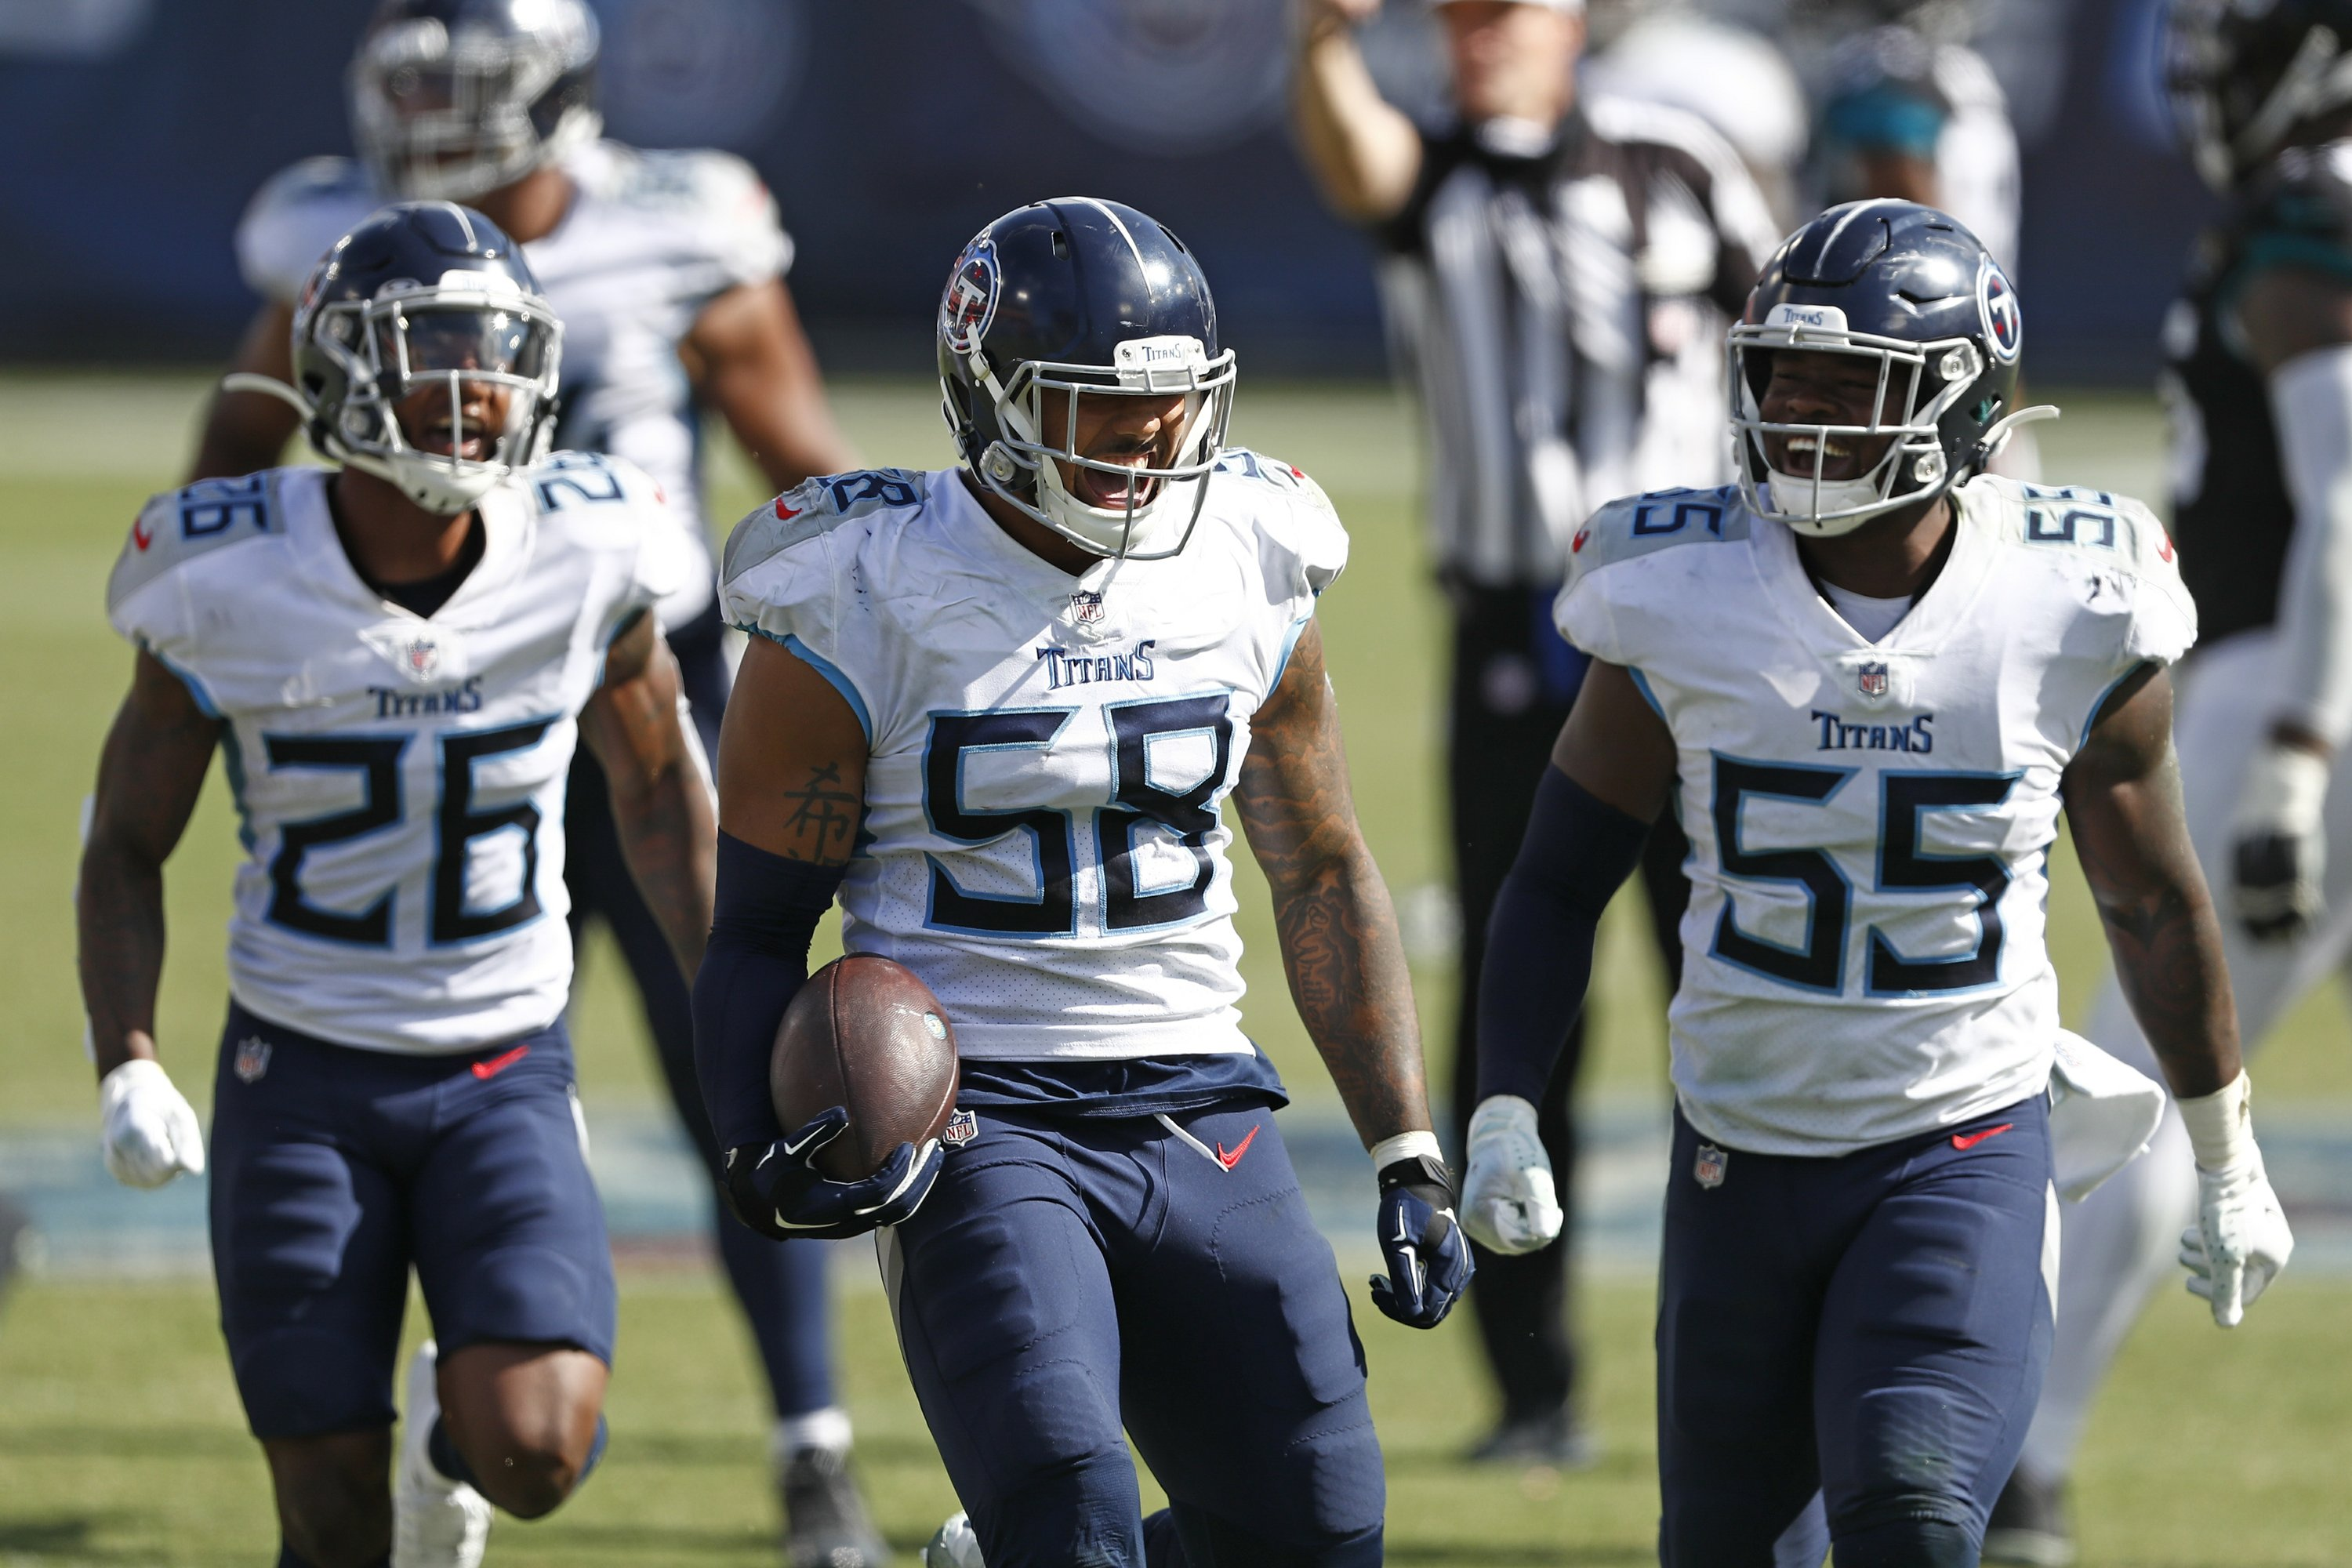 Happy at 1st 2-0 start since 2008, Titans see plenty to fix